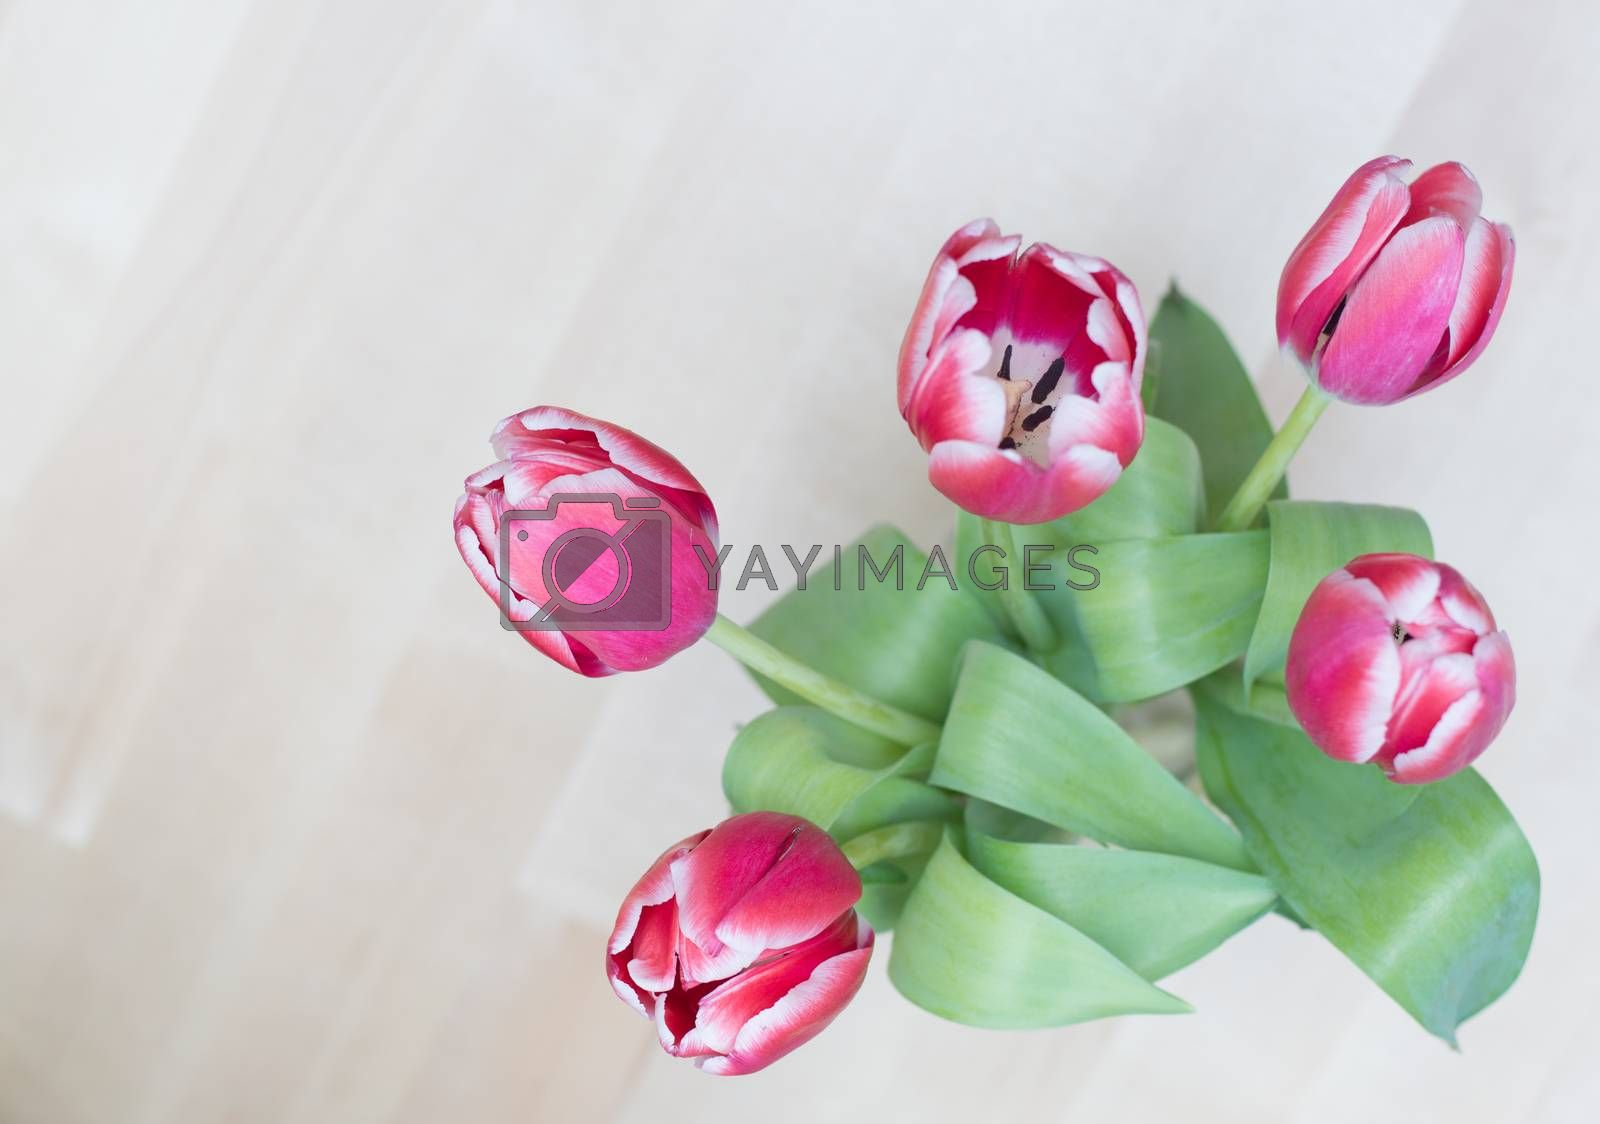 bouquet of five tulips on white background